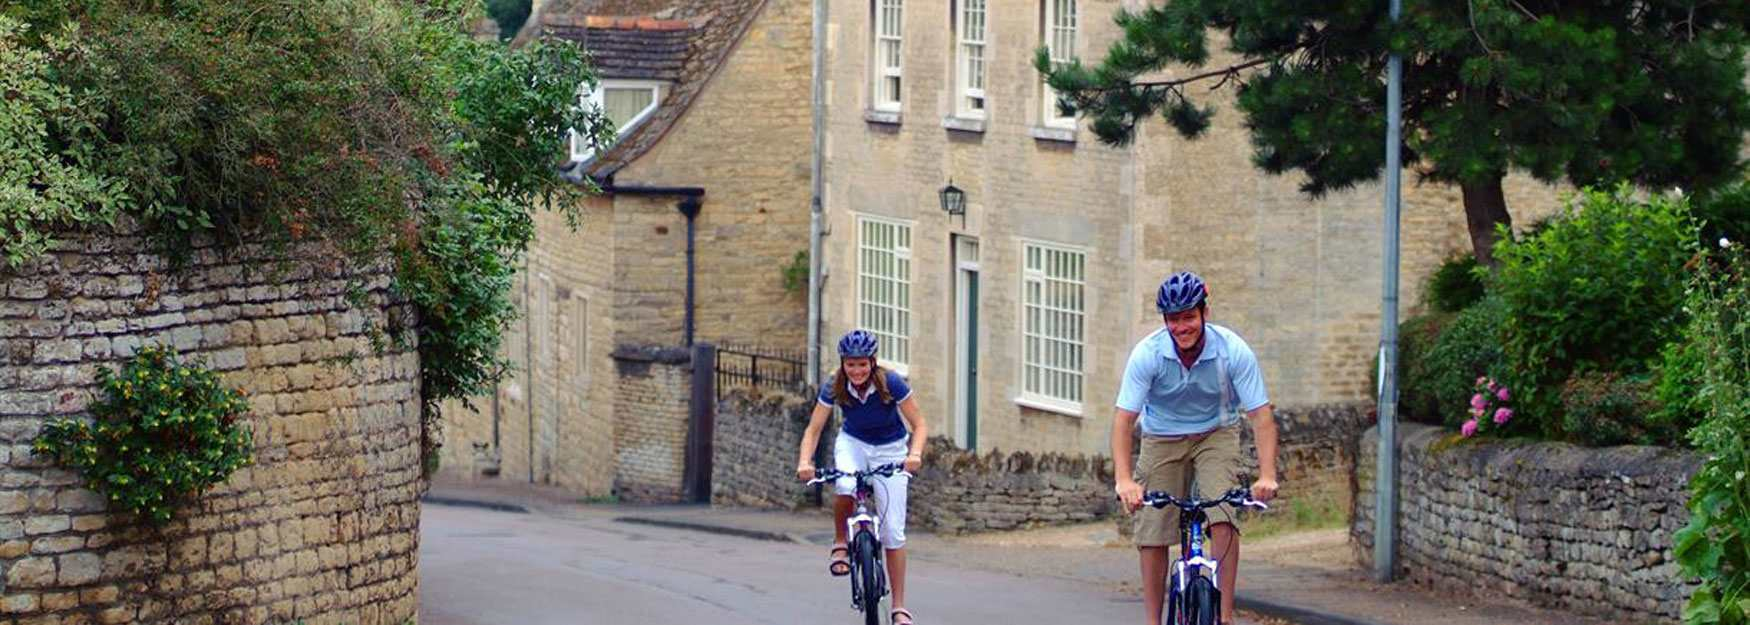 Guided or self guided cycling tours of the Cotswolds